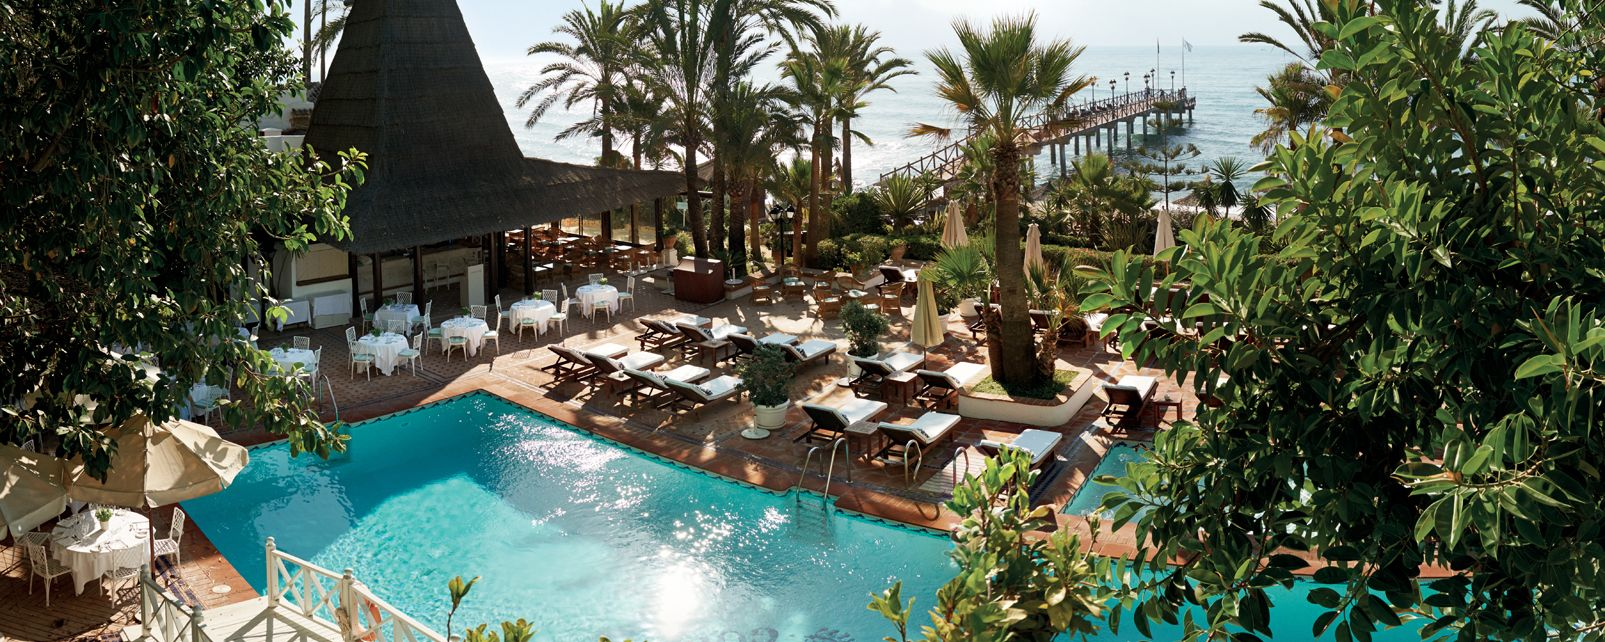 Hôtel Marbella Club Golf Resort Spa